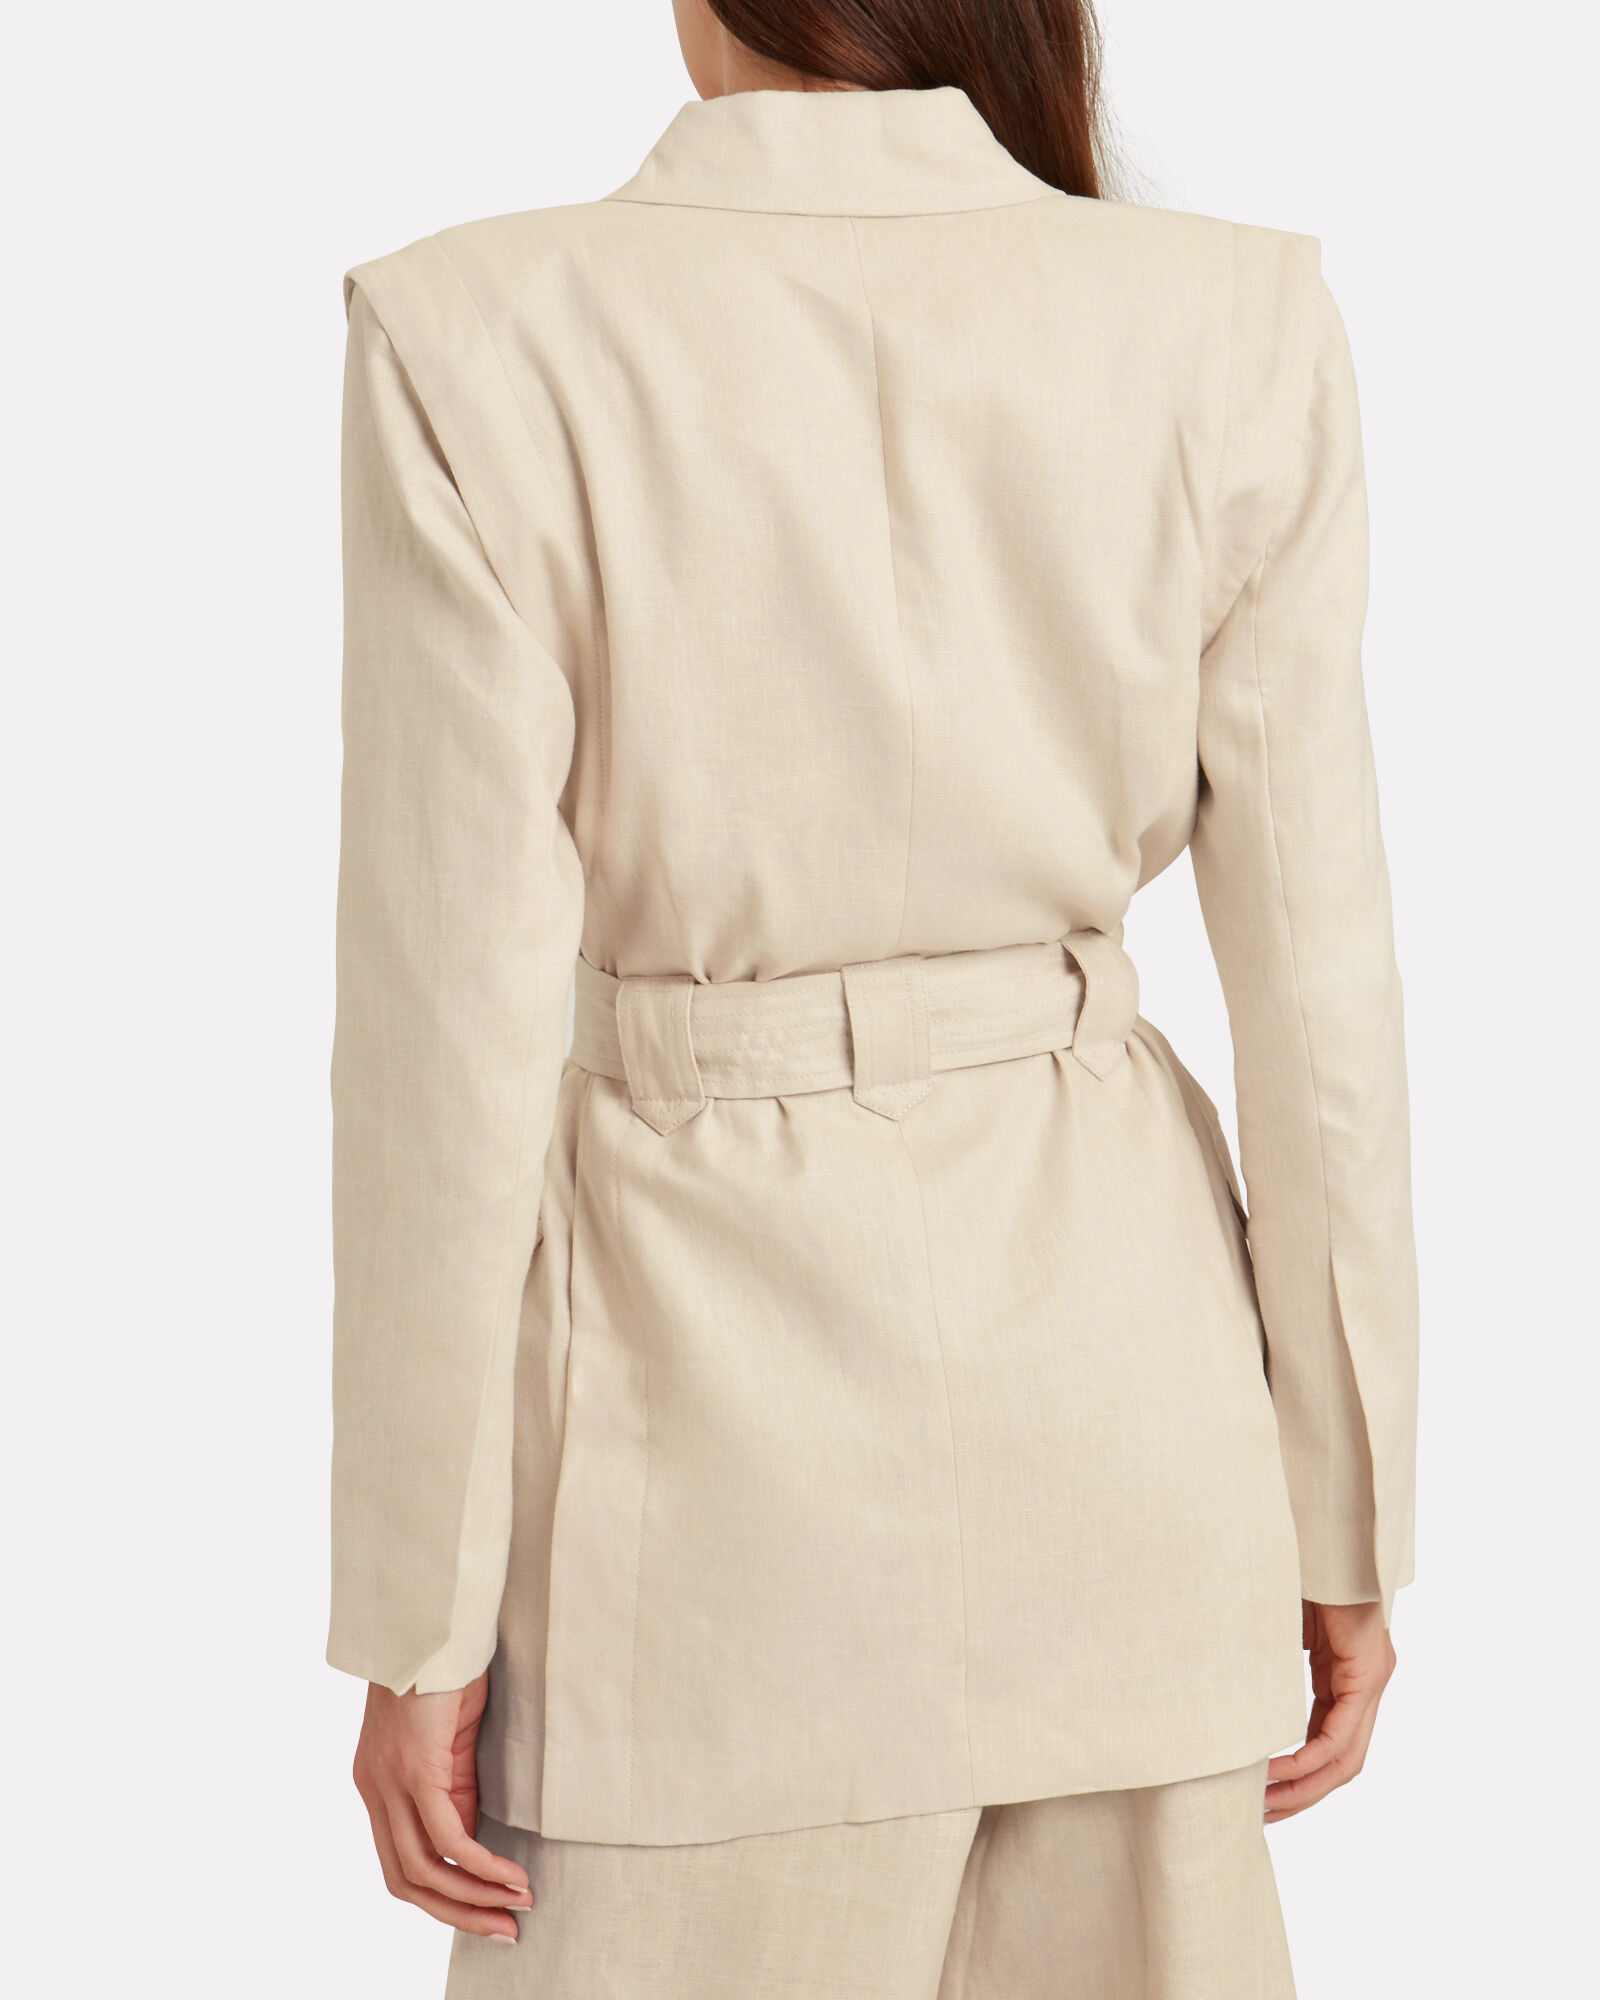 Veruschka Linen Double Breasted Blazer, BEIGE, hi-res